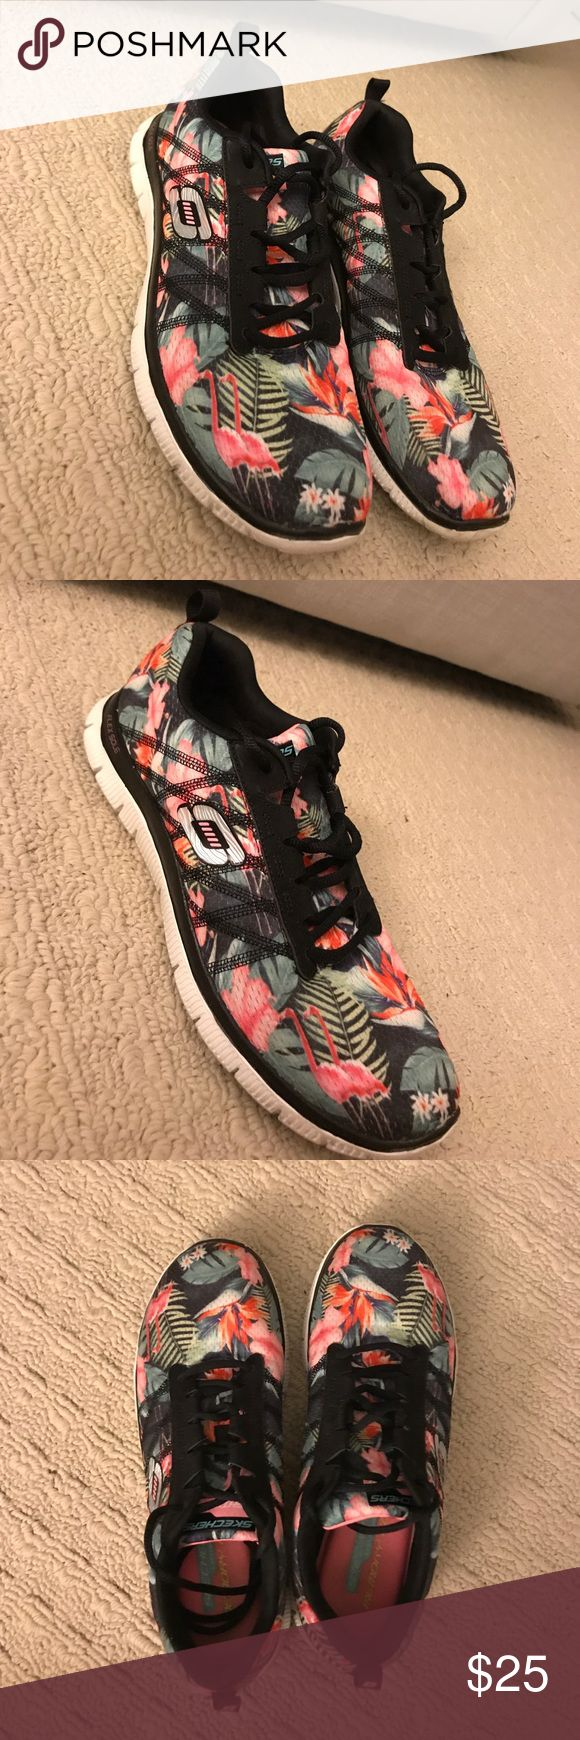 Tropical Skechers sneakers Adorable tropical printed Skechers. Black background with flamingo, bird of paradise and palm leaf print. Has memory foam insoles. Skechers Shoes Sneakers